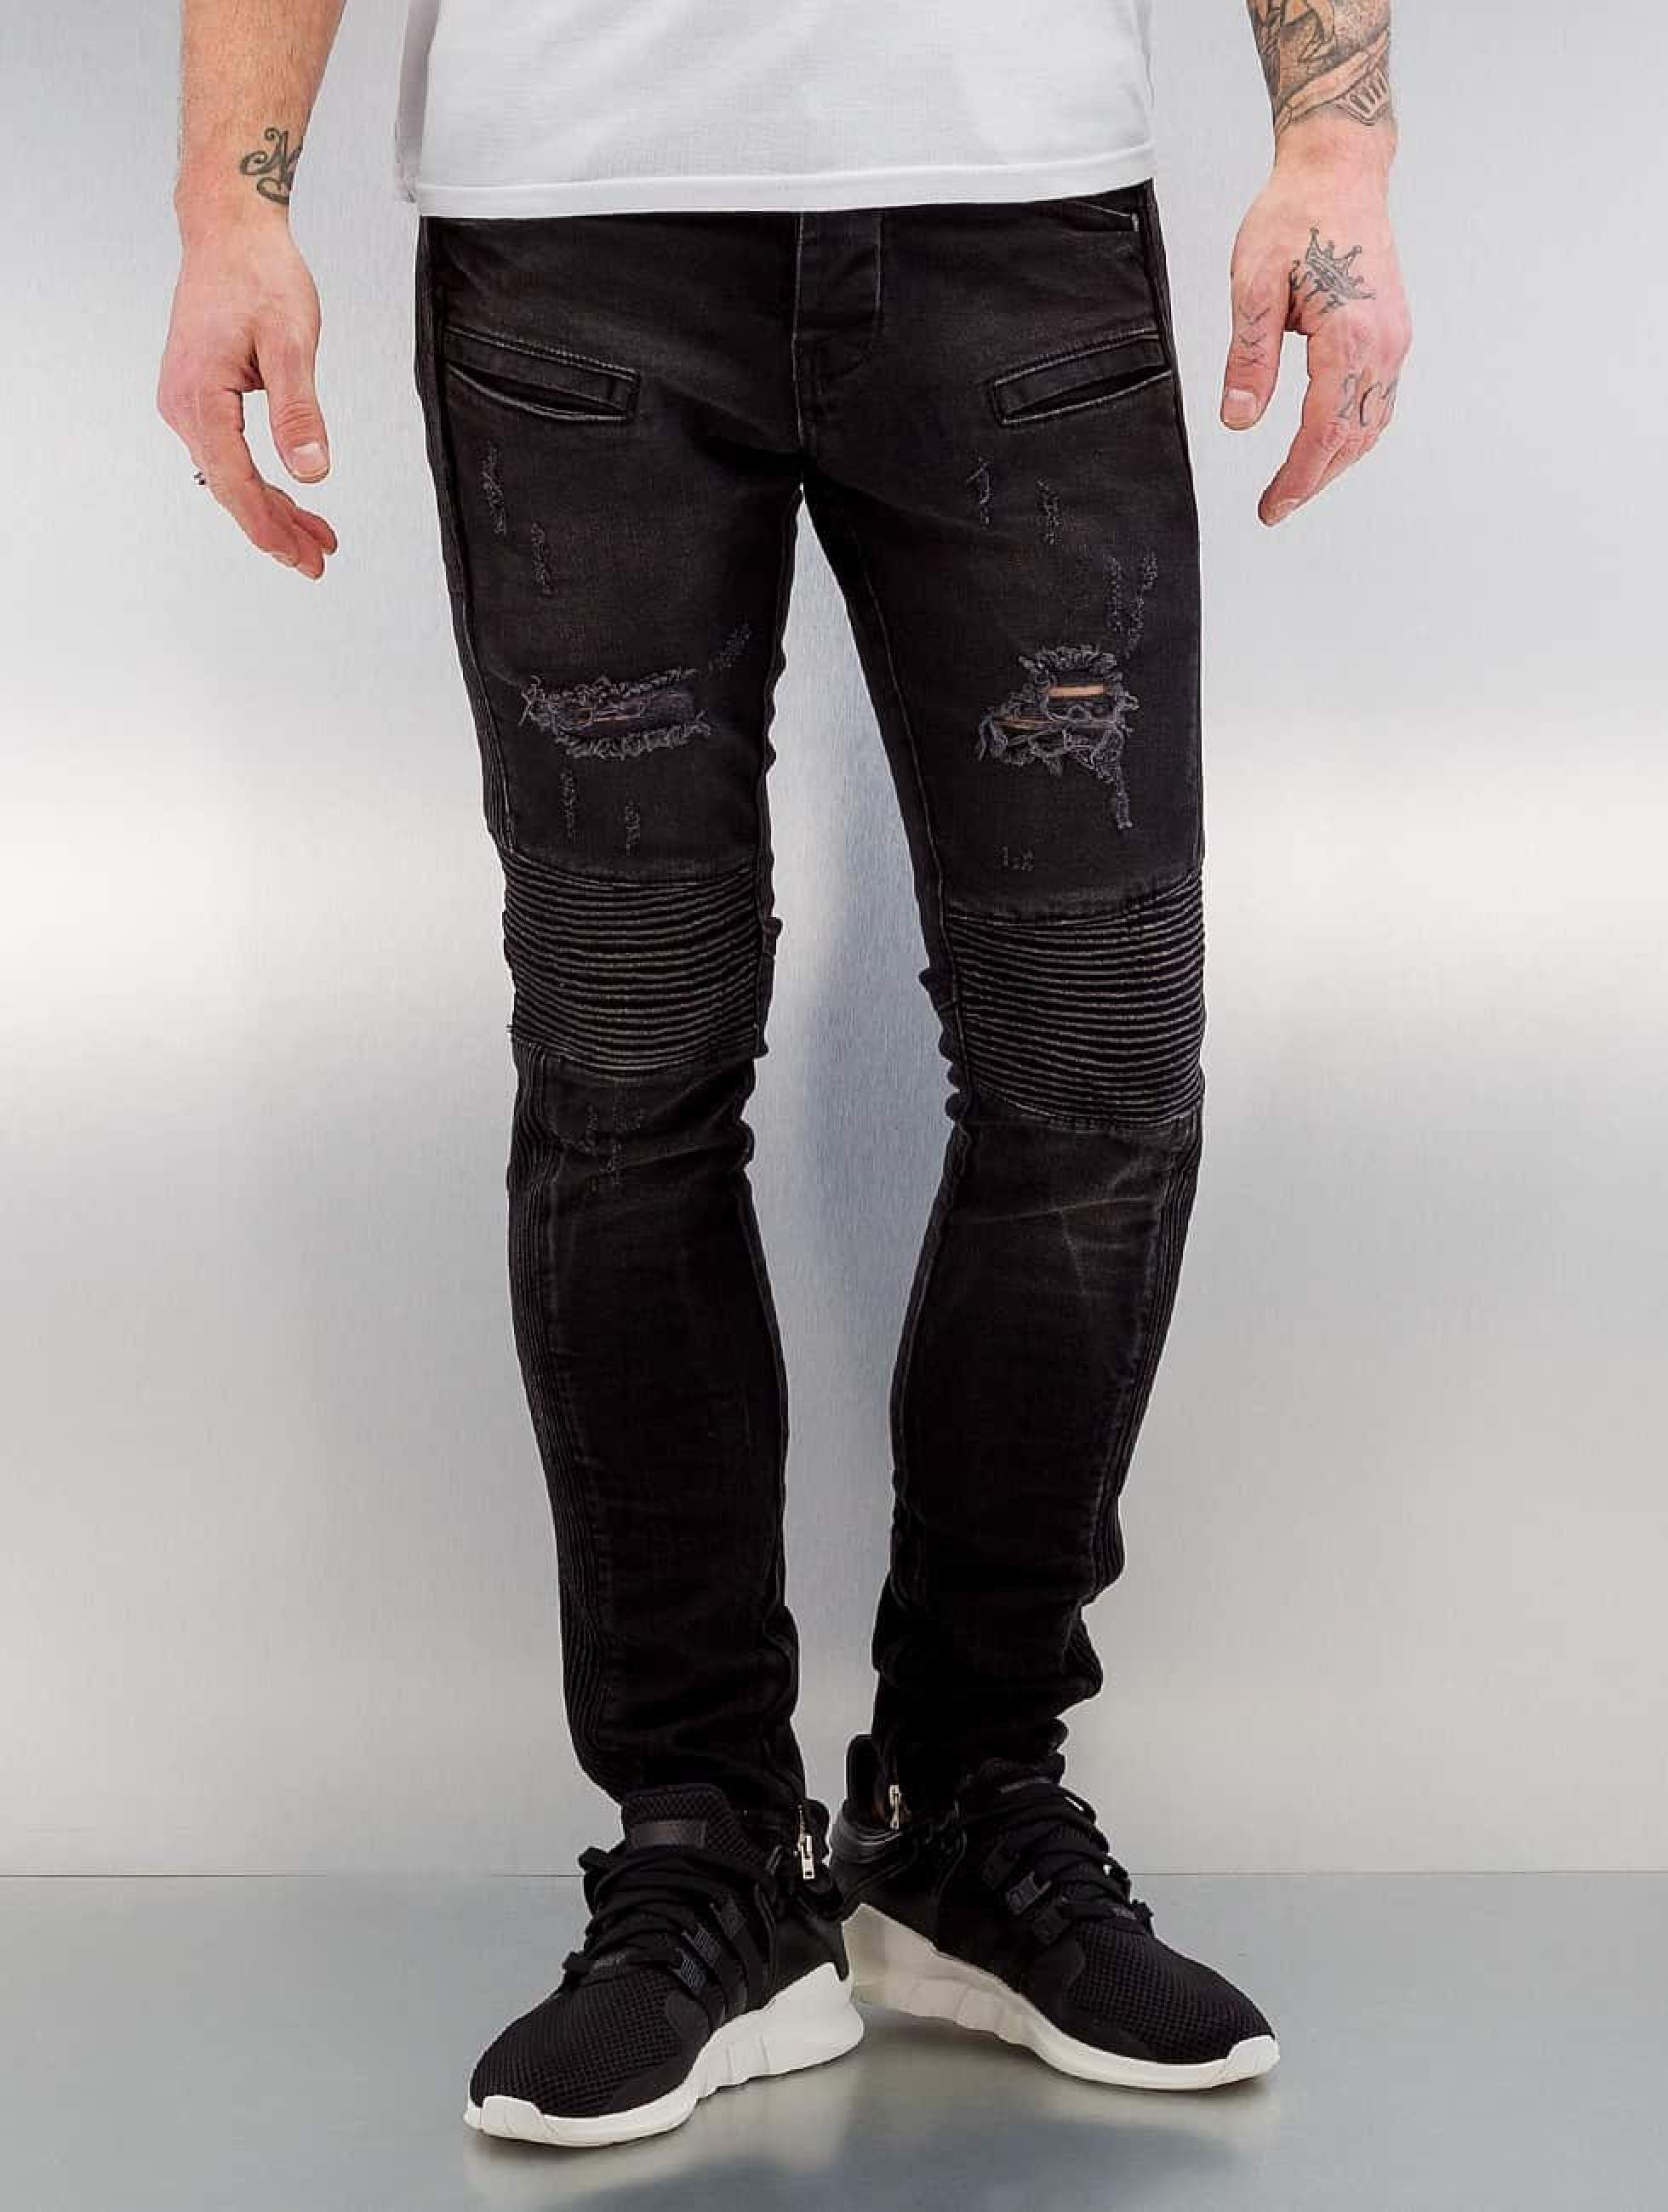 2Y / Skinny Jeans Quilted in black W 33